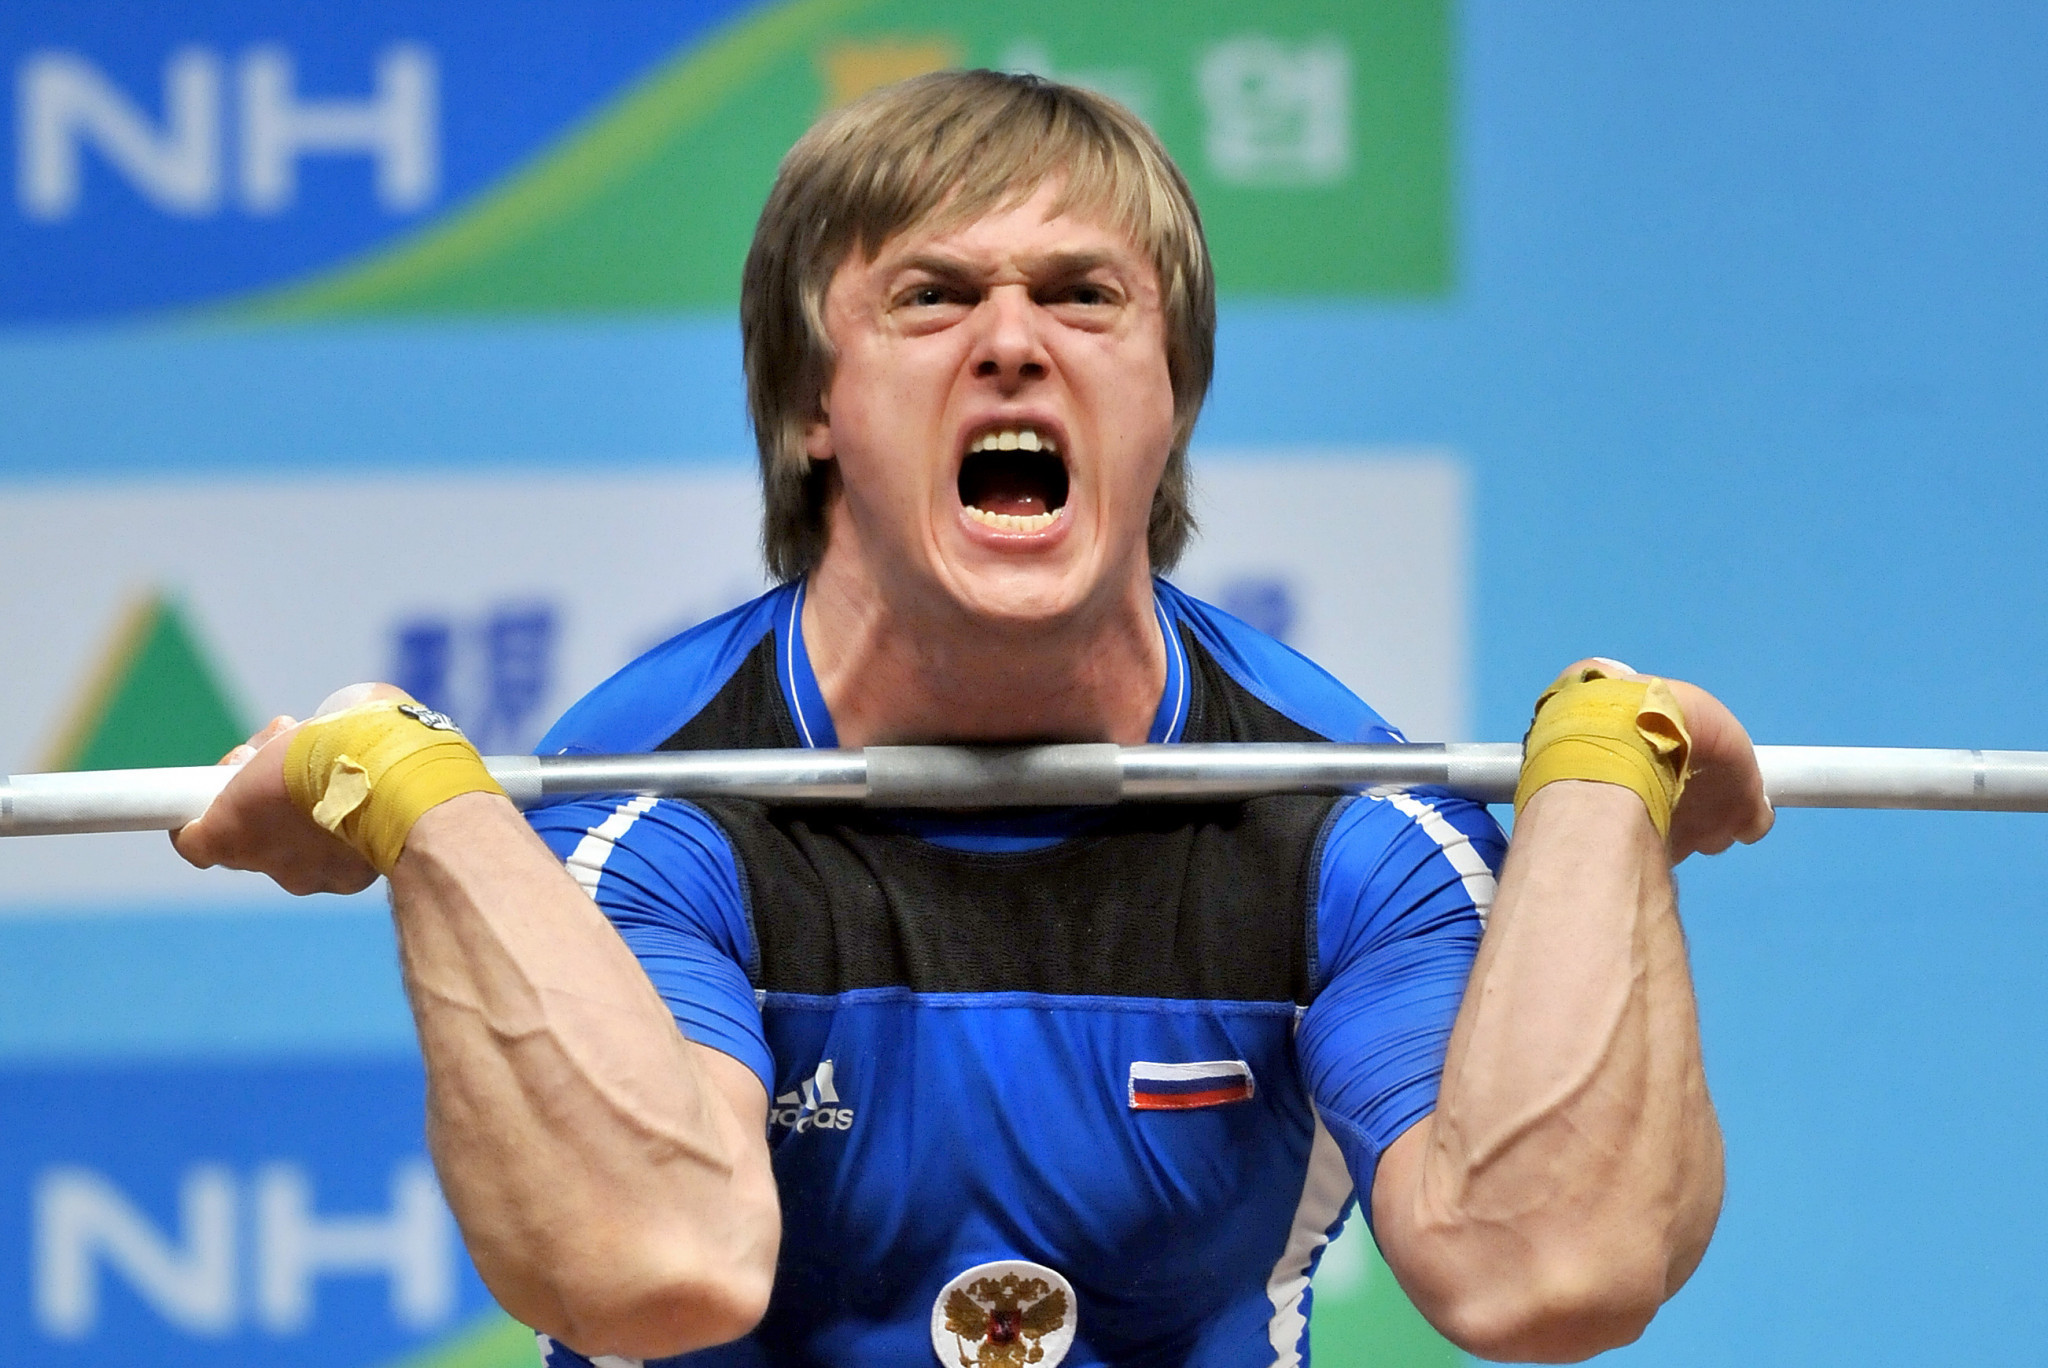 Dmitry Lapikov is among the seven latest weightlifters provisionally suspended by the IWF today ©Getty Images